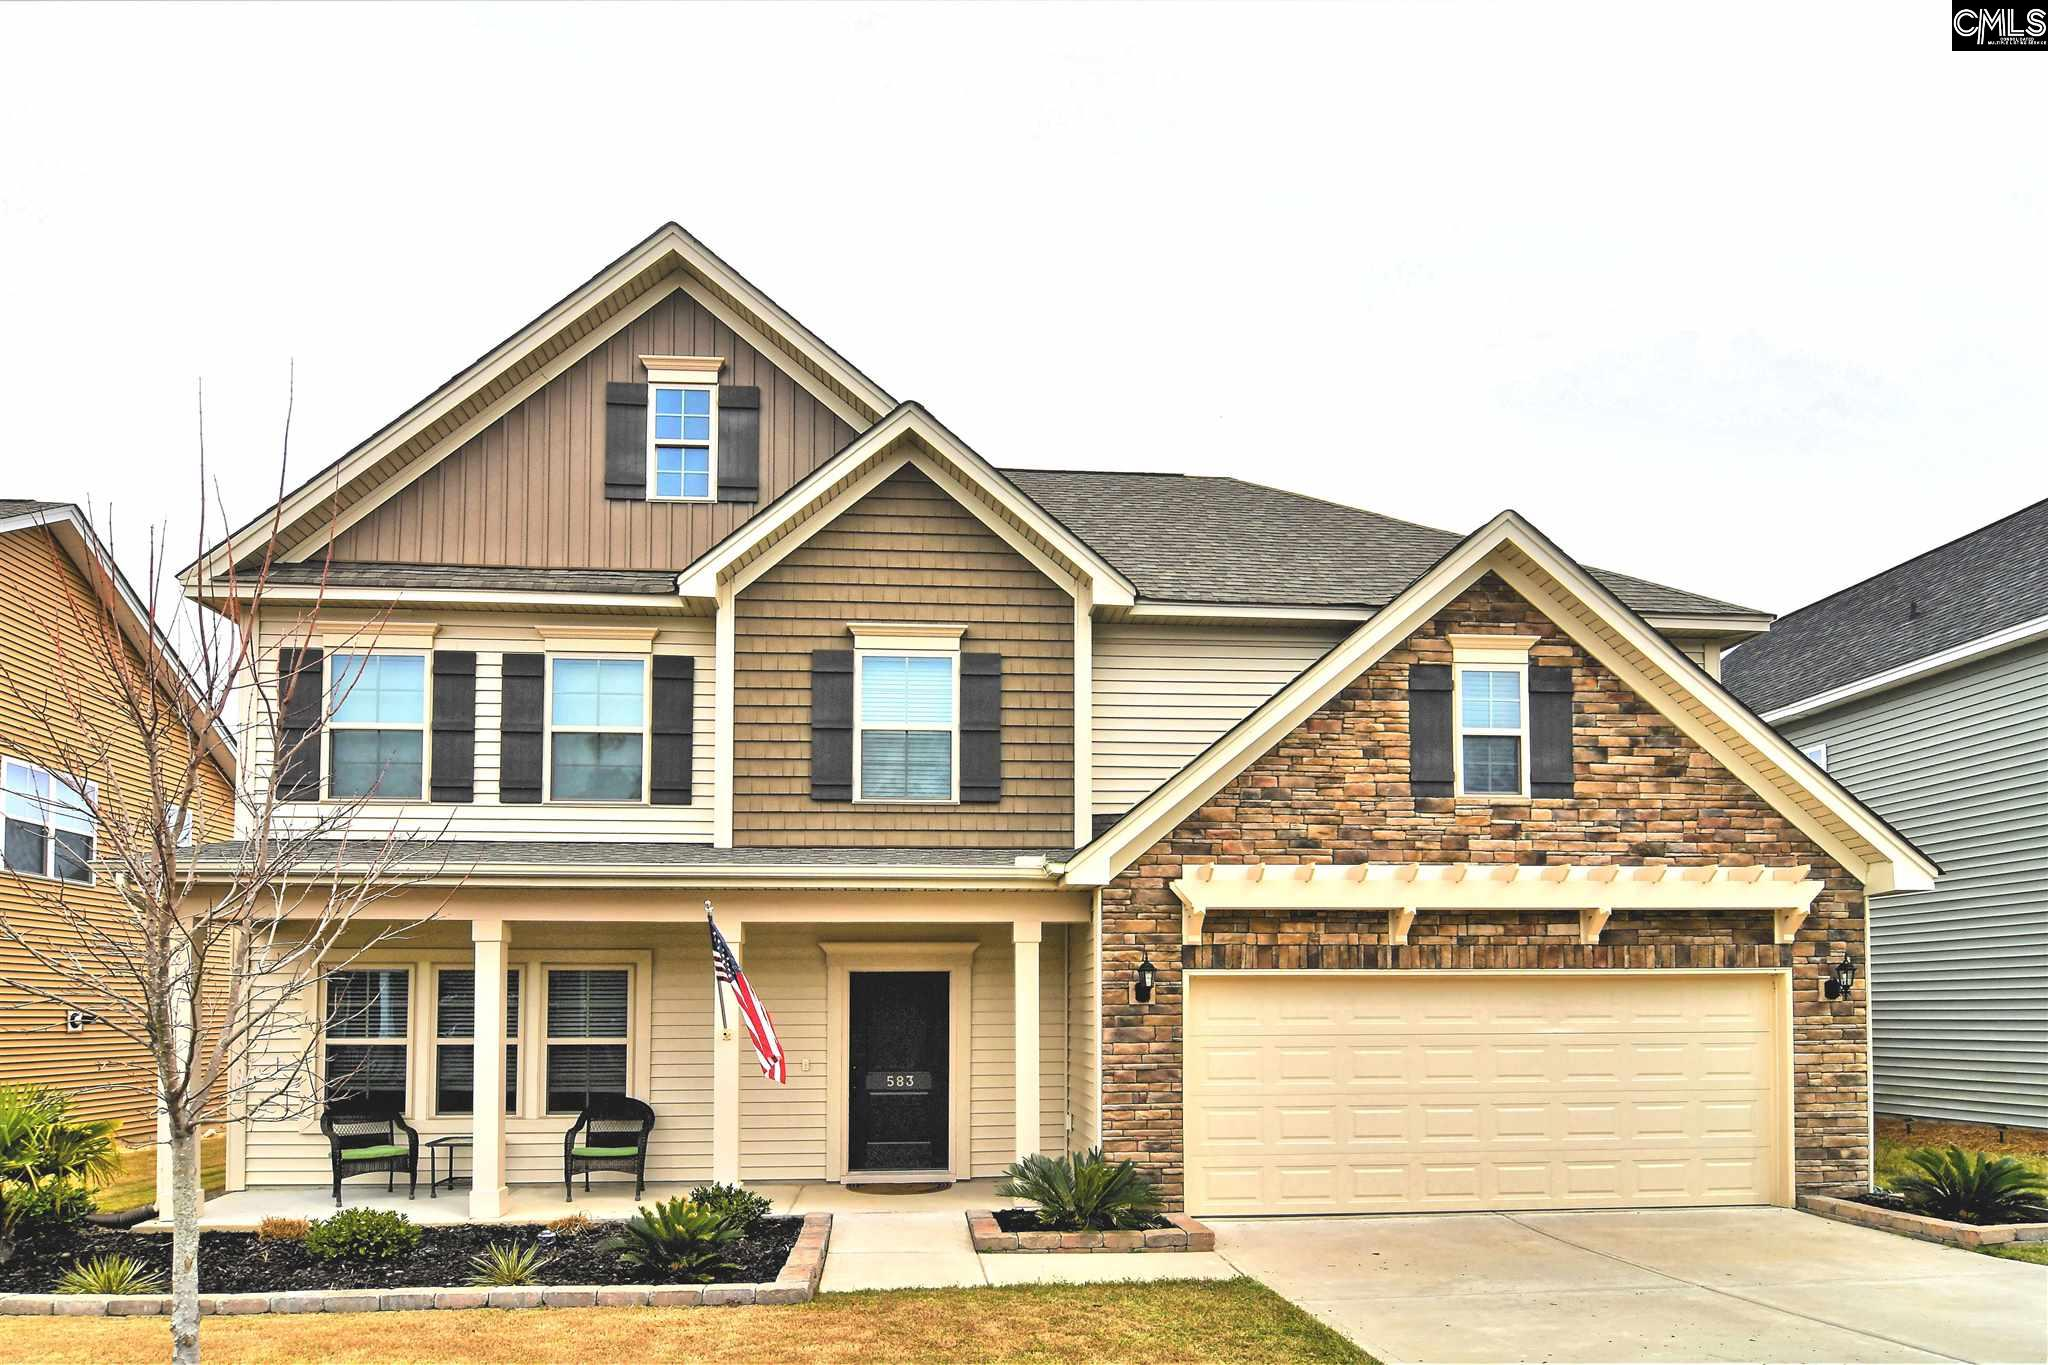 583 Blue Ledge Lexington, SC 29072